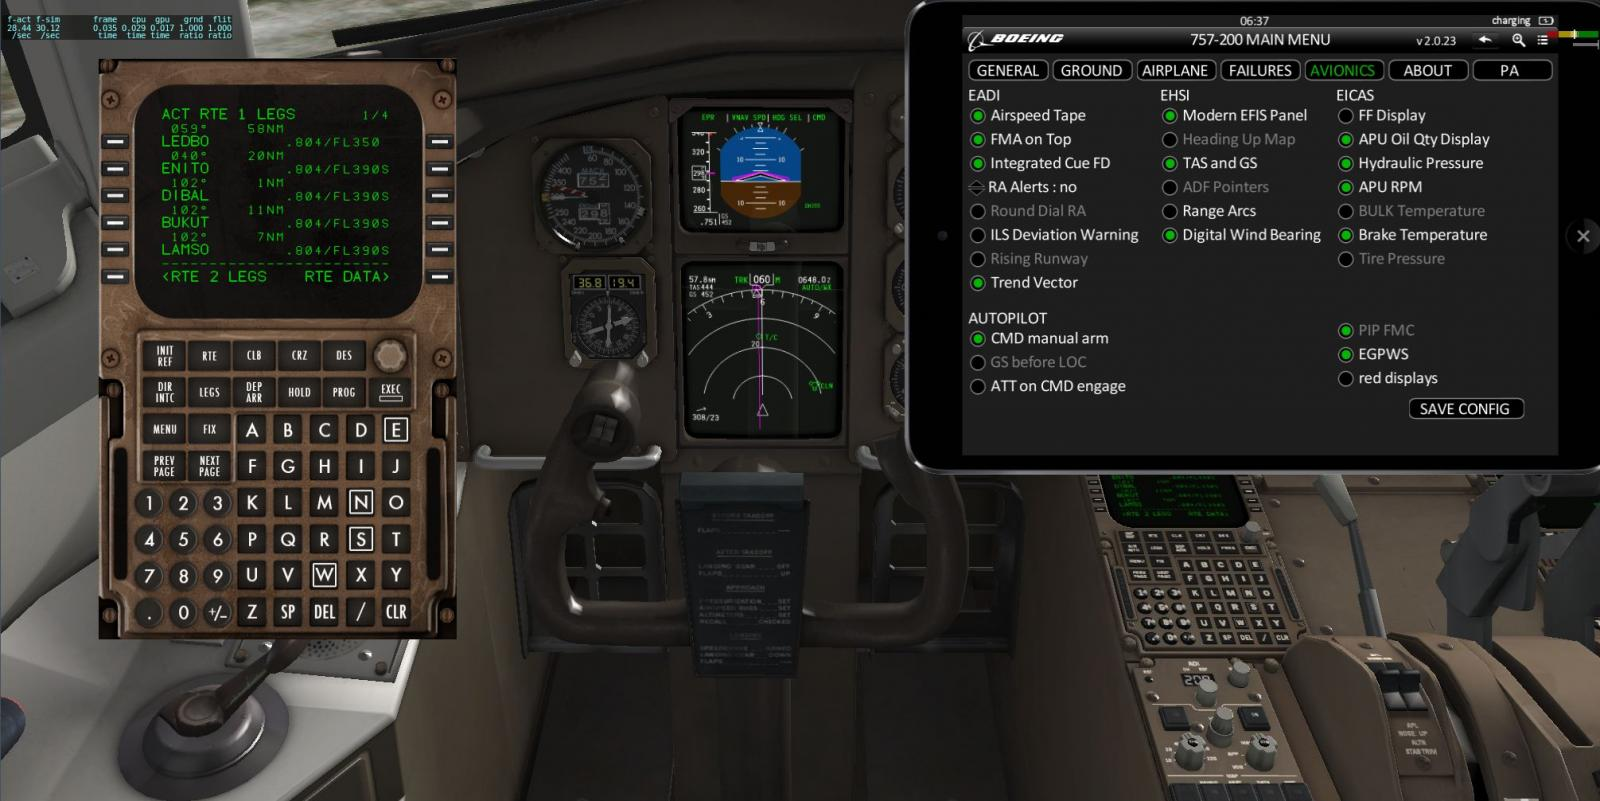 v2 0 23 not follwing lnav in xp10 boeing 757 v2 professional x rh forums x plane org Delta Boeing 757 Boeing 777